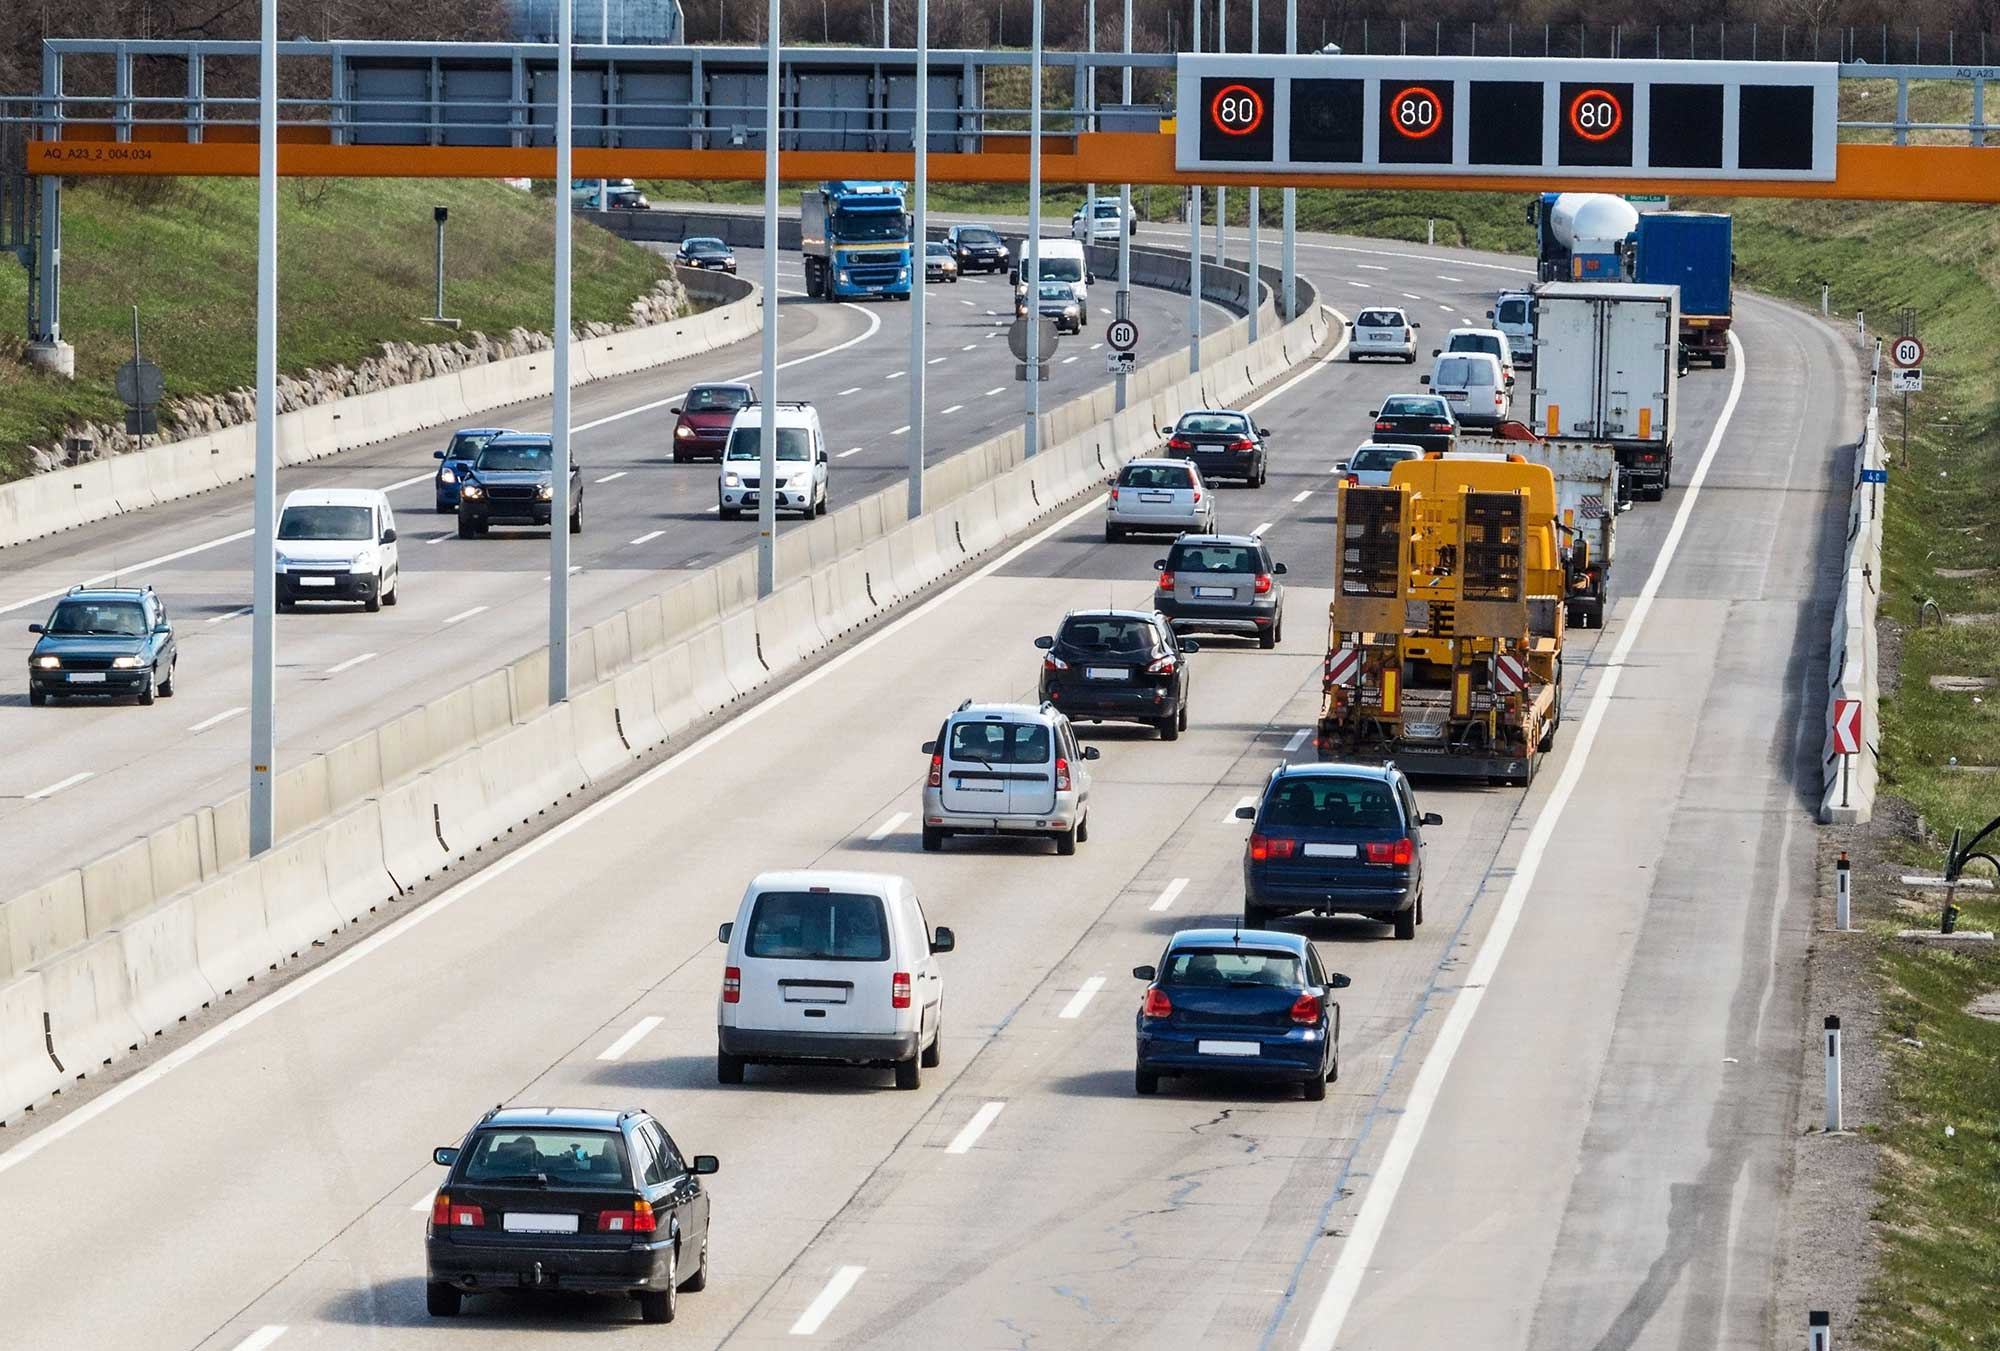 High-Tech Highways: Securing the Future of Transportation